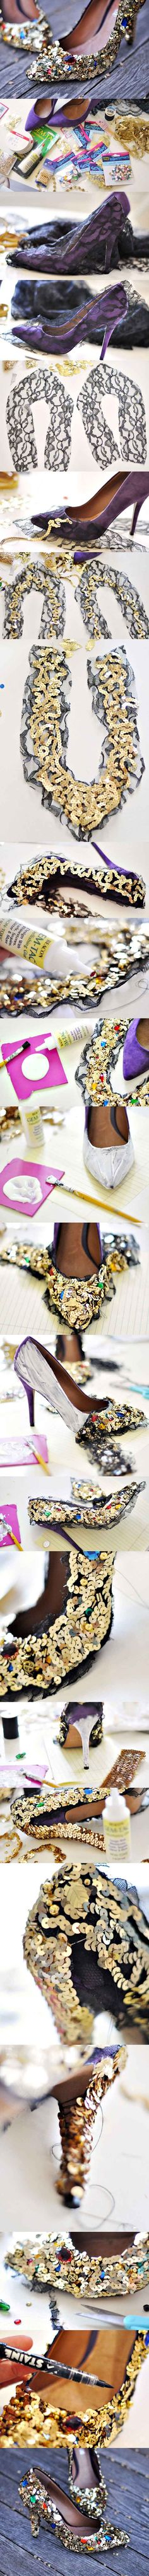 5 Sexy And Beautiful Heels That You Can Have In Your Home